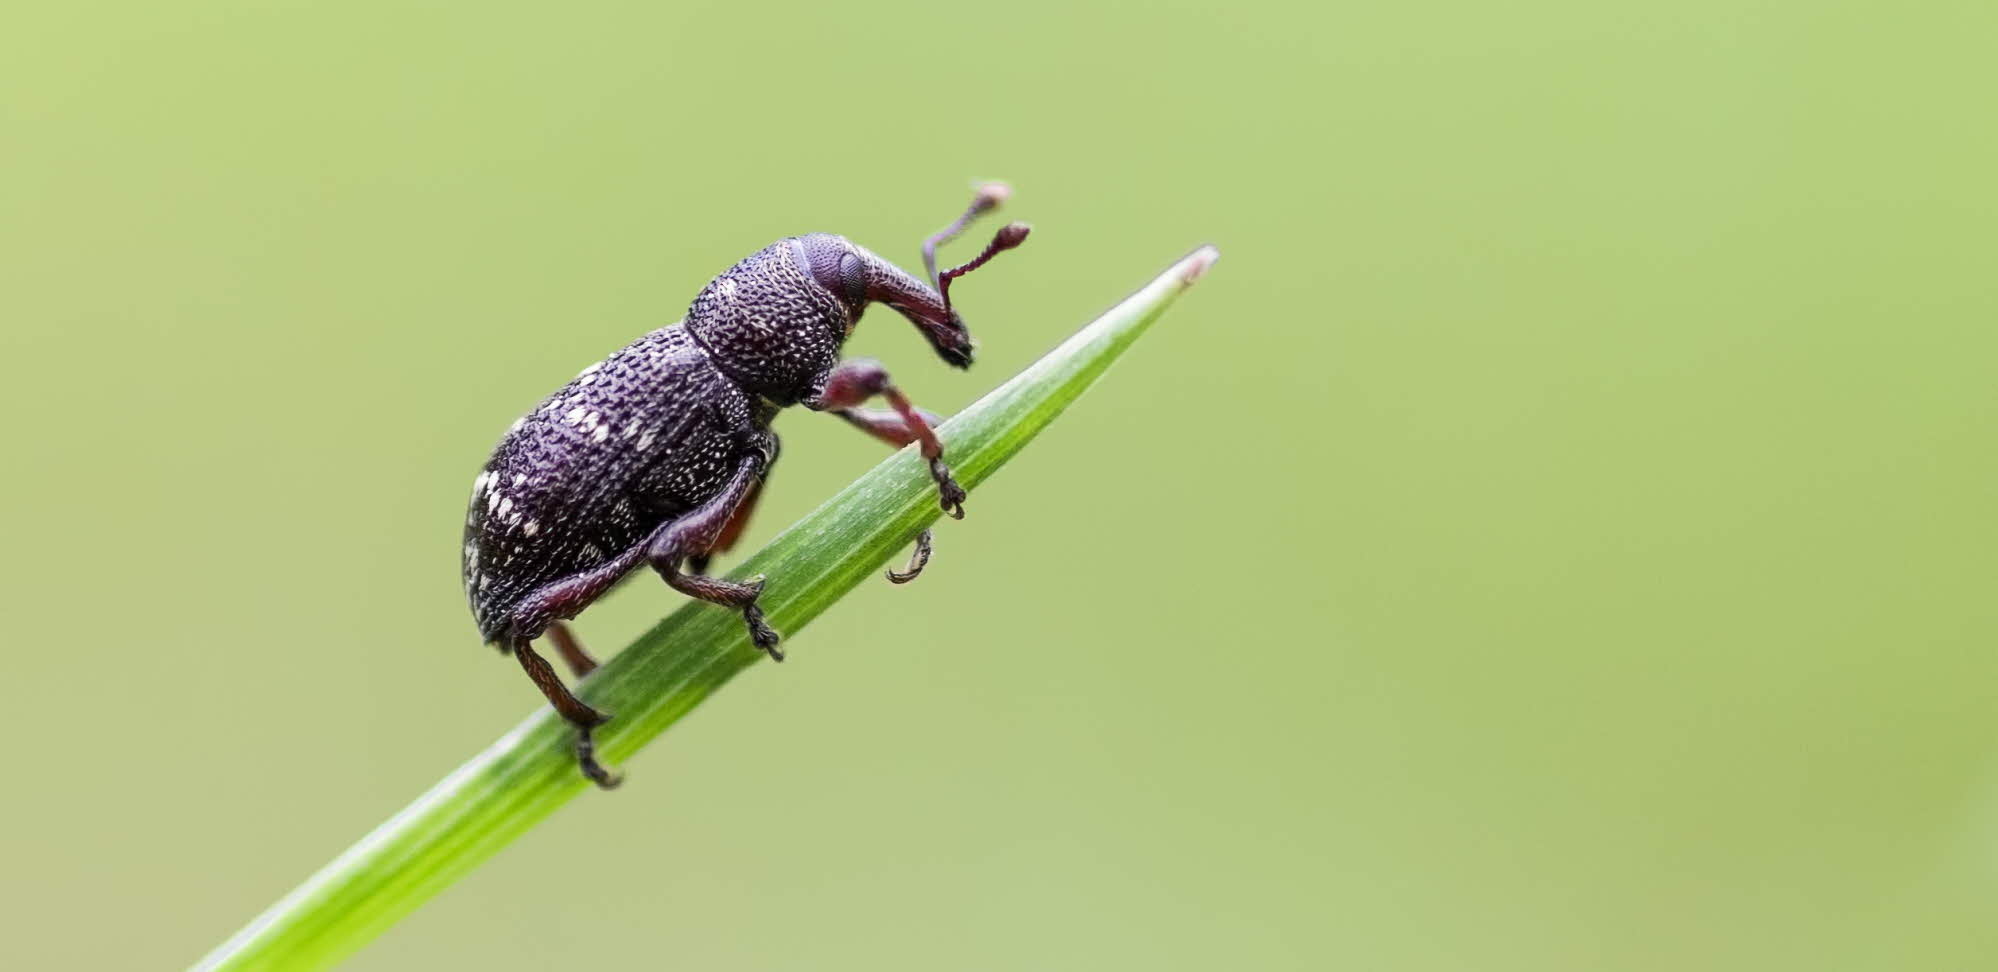 Project: Control of forest insect pests